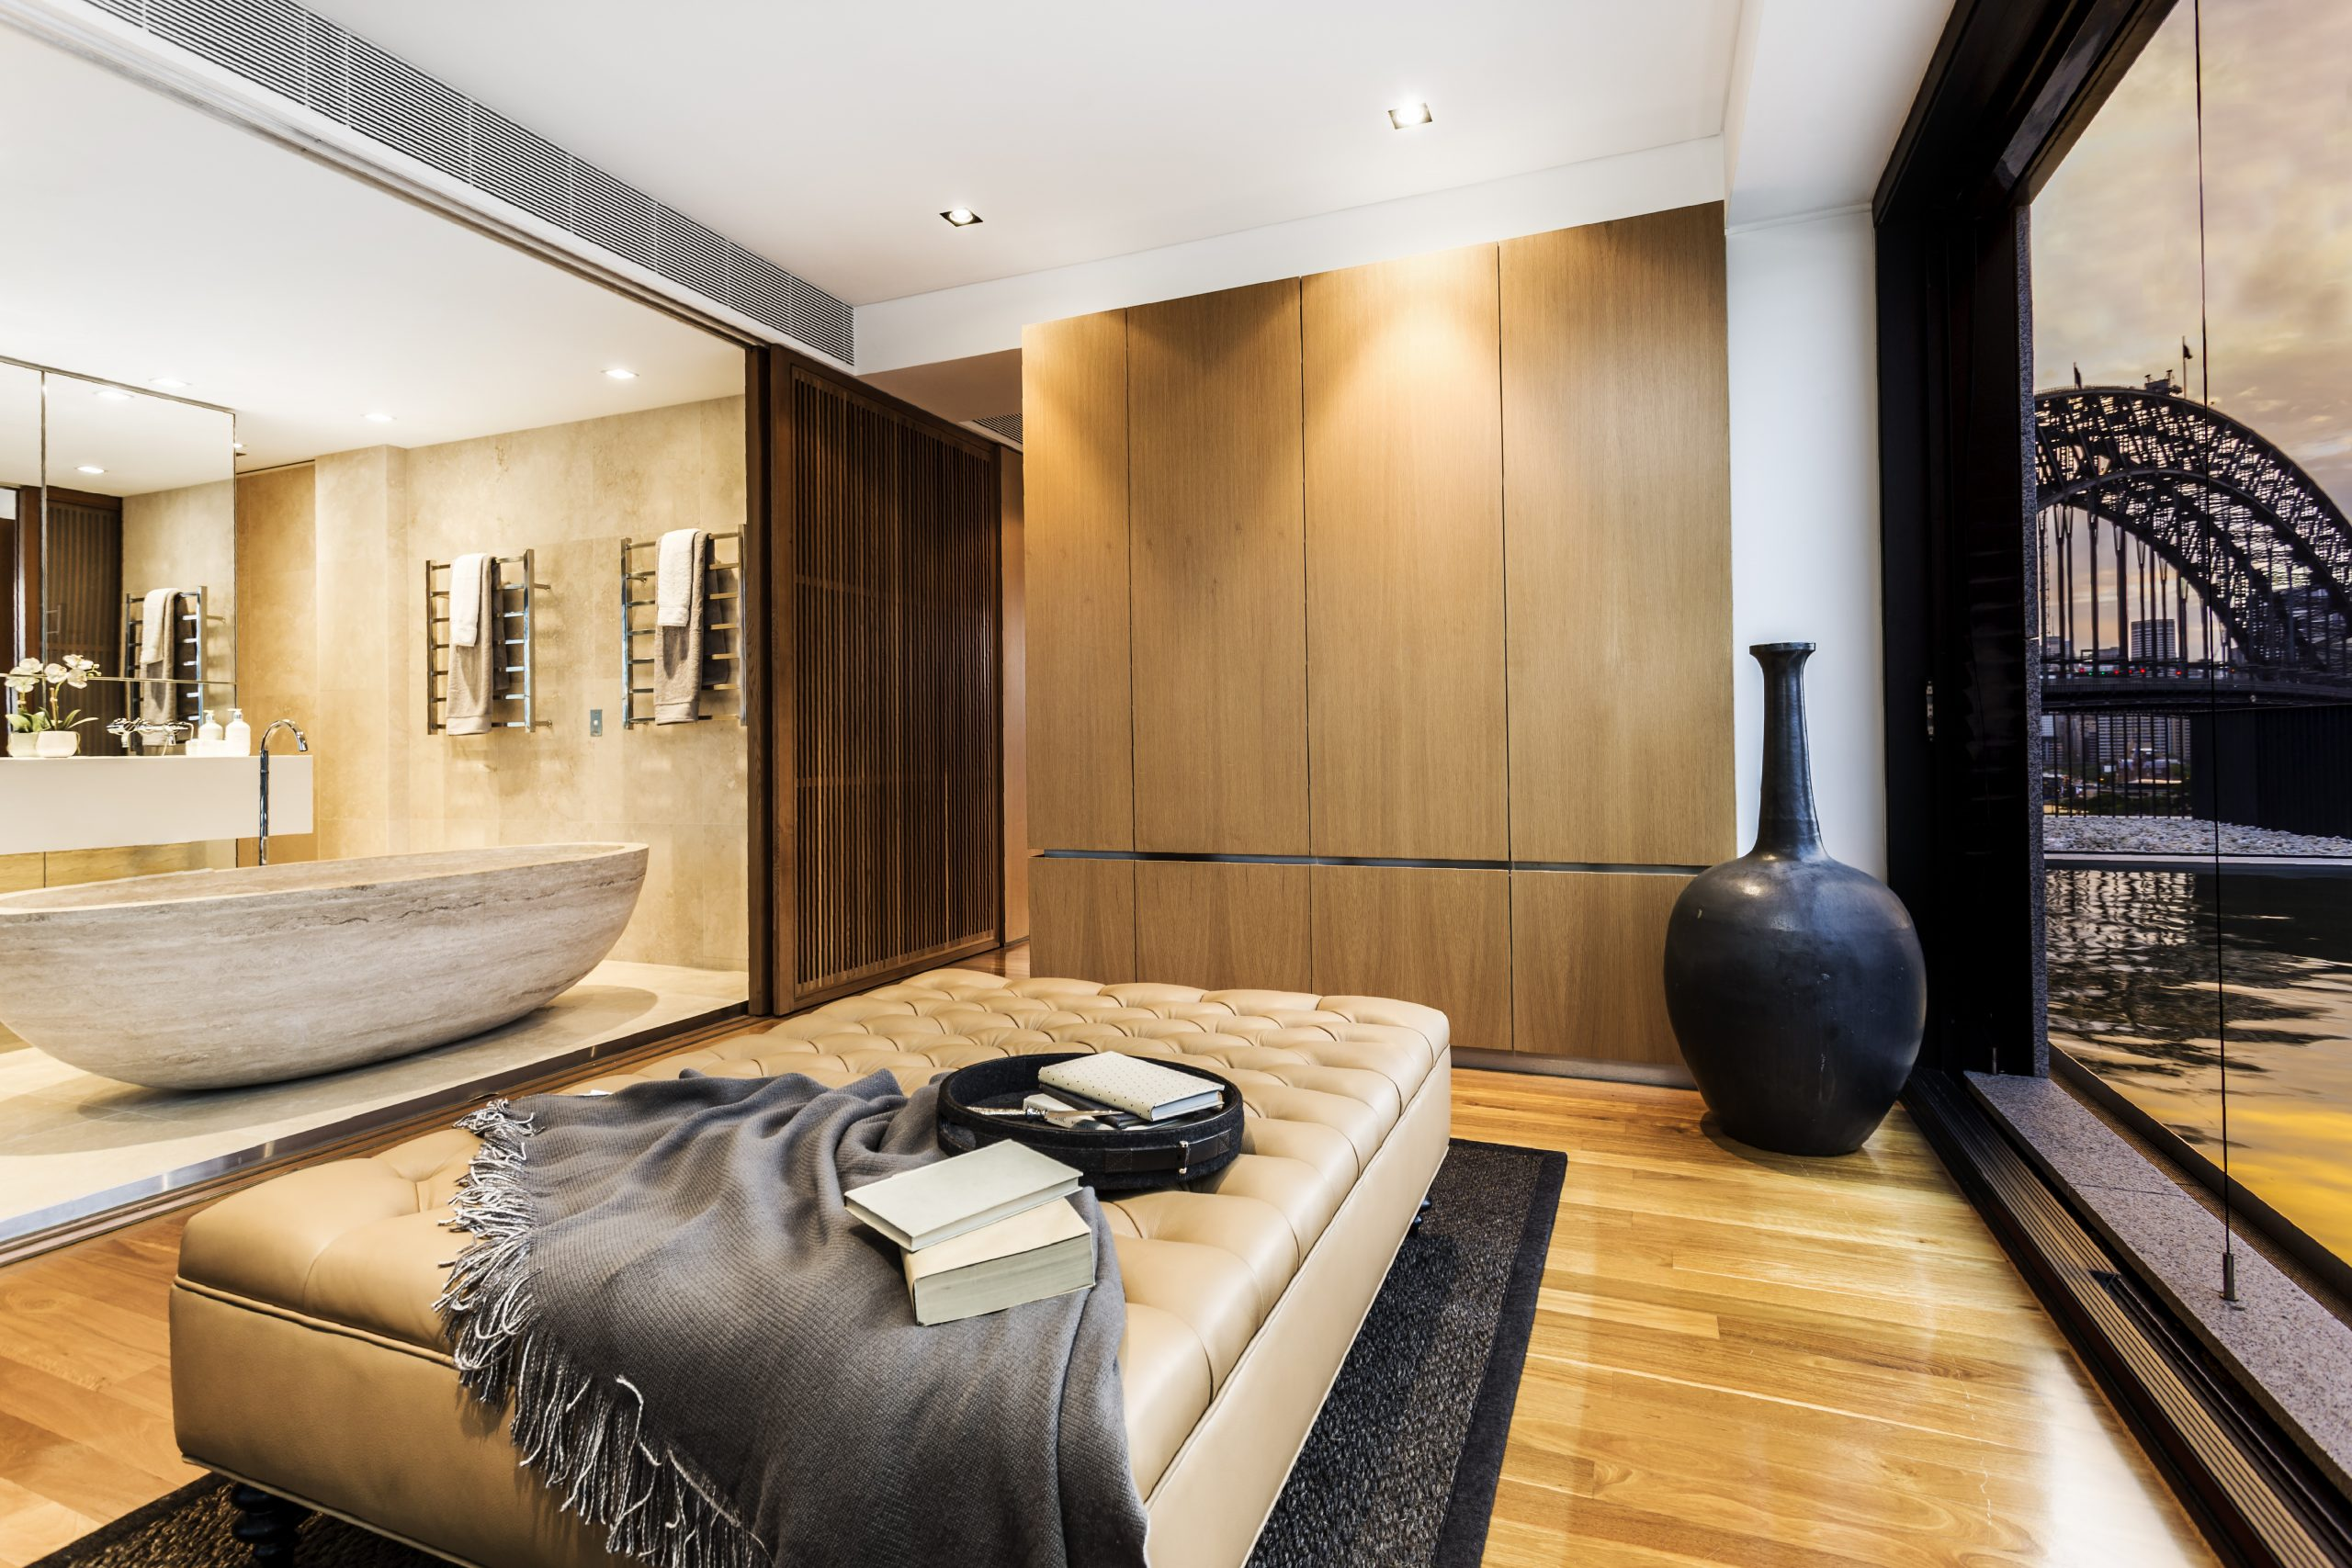 Best Practice For Furnishing Your Investment Property